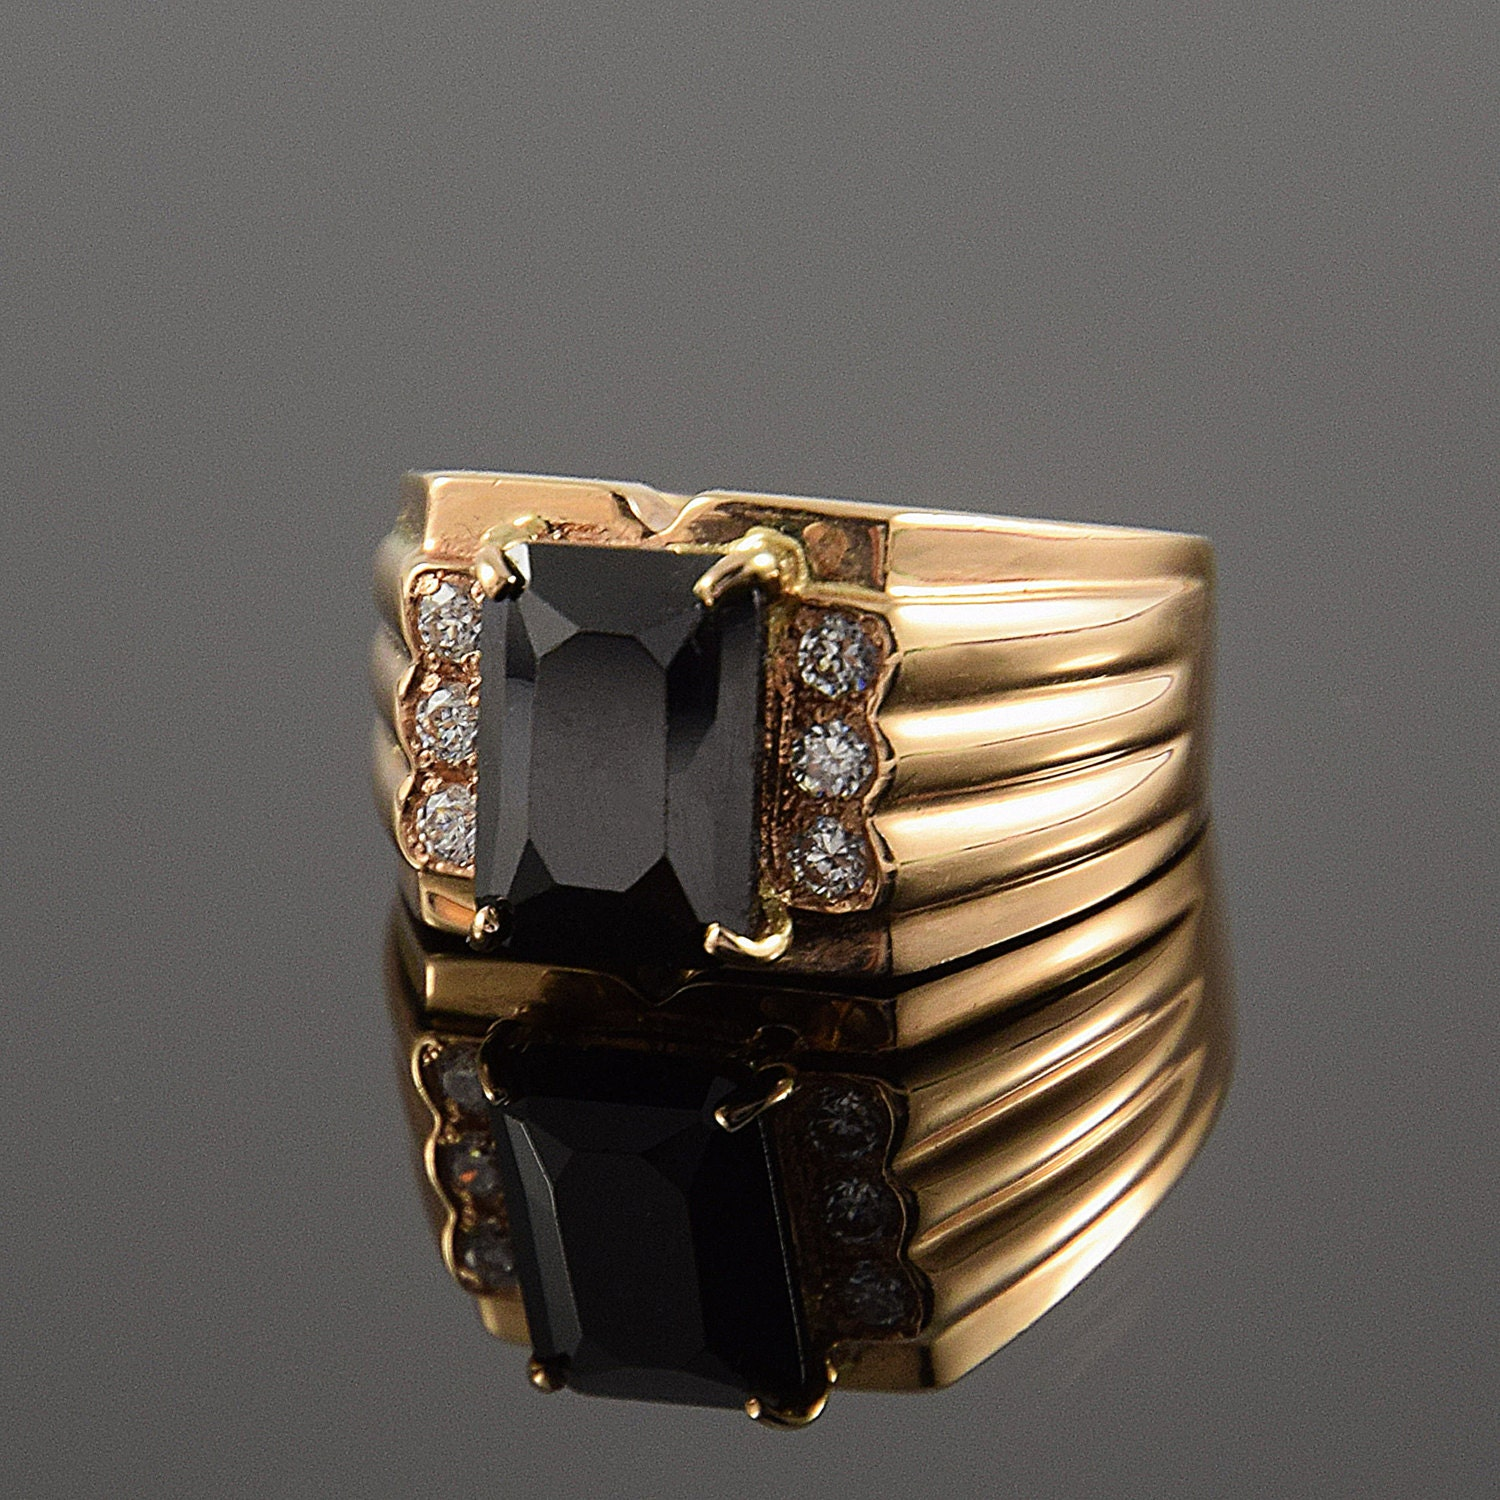 gucci jewelry diamantissima in ring normal product gallery s silver sterling lyst metallic mens men black rings wide